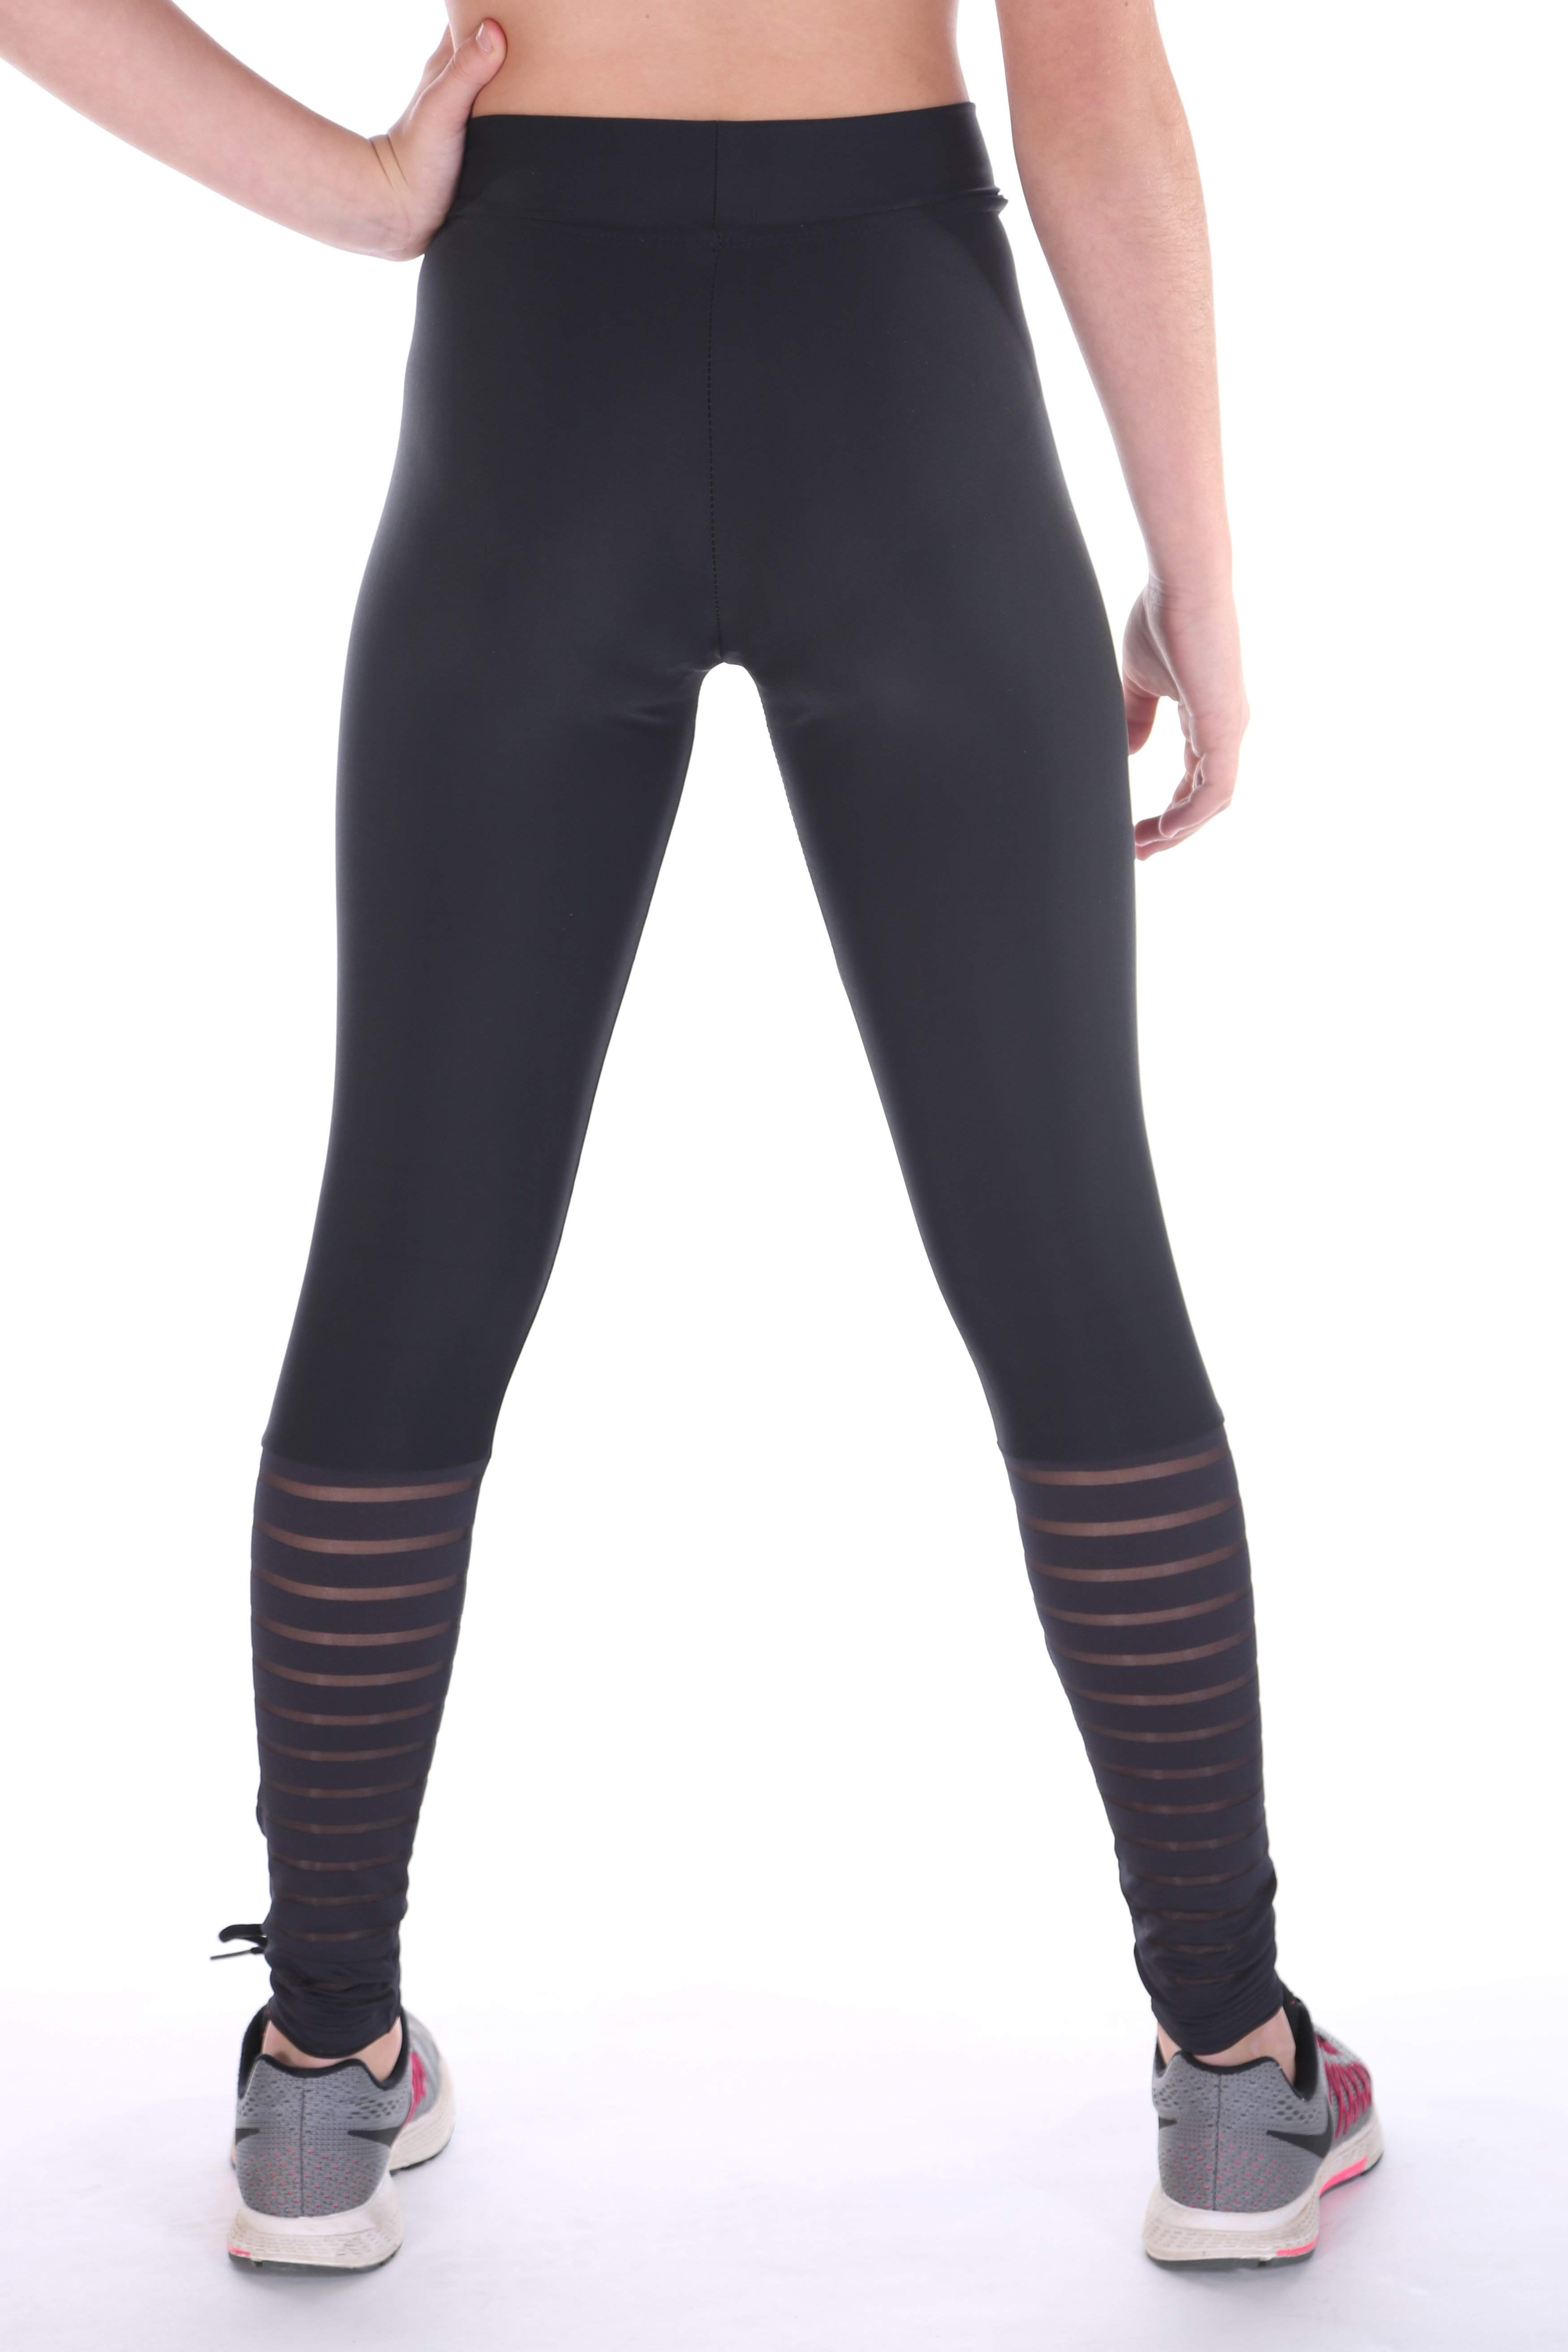 Girls Sprint Active Tights-Cosi G Studiowear